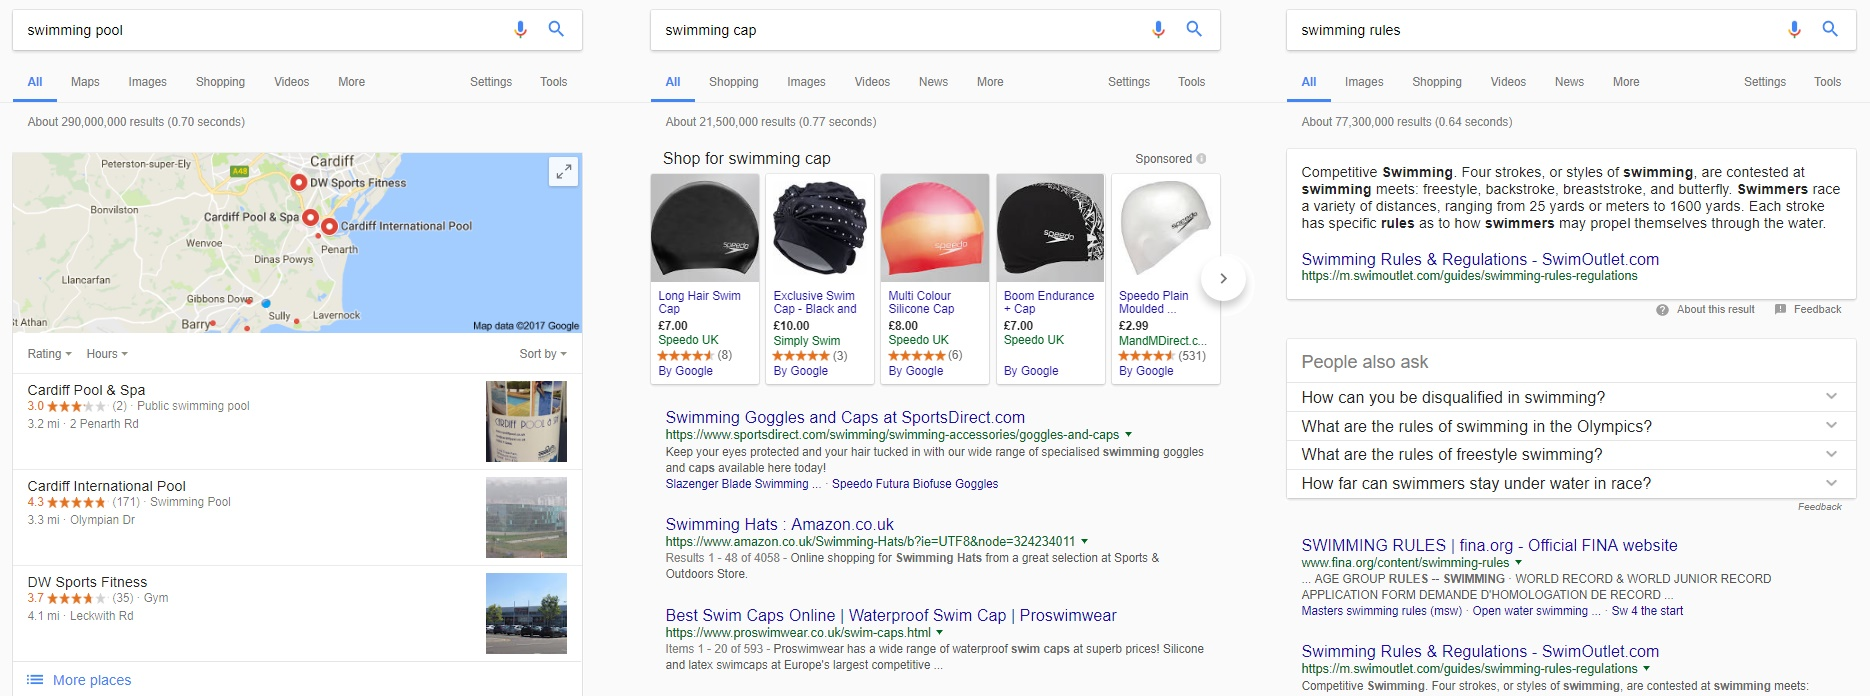 Swimming search results